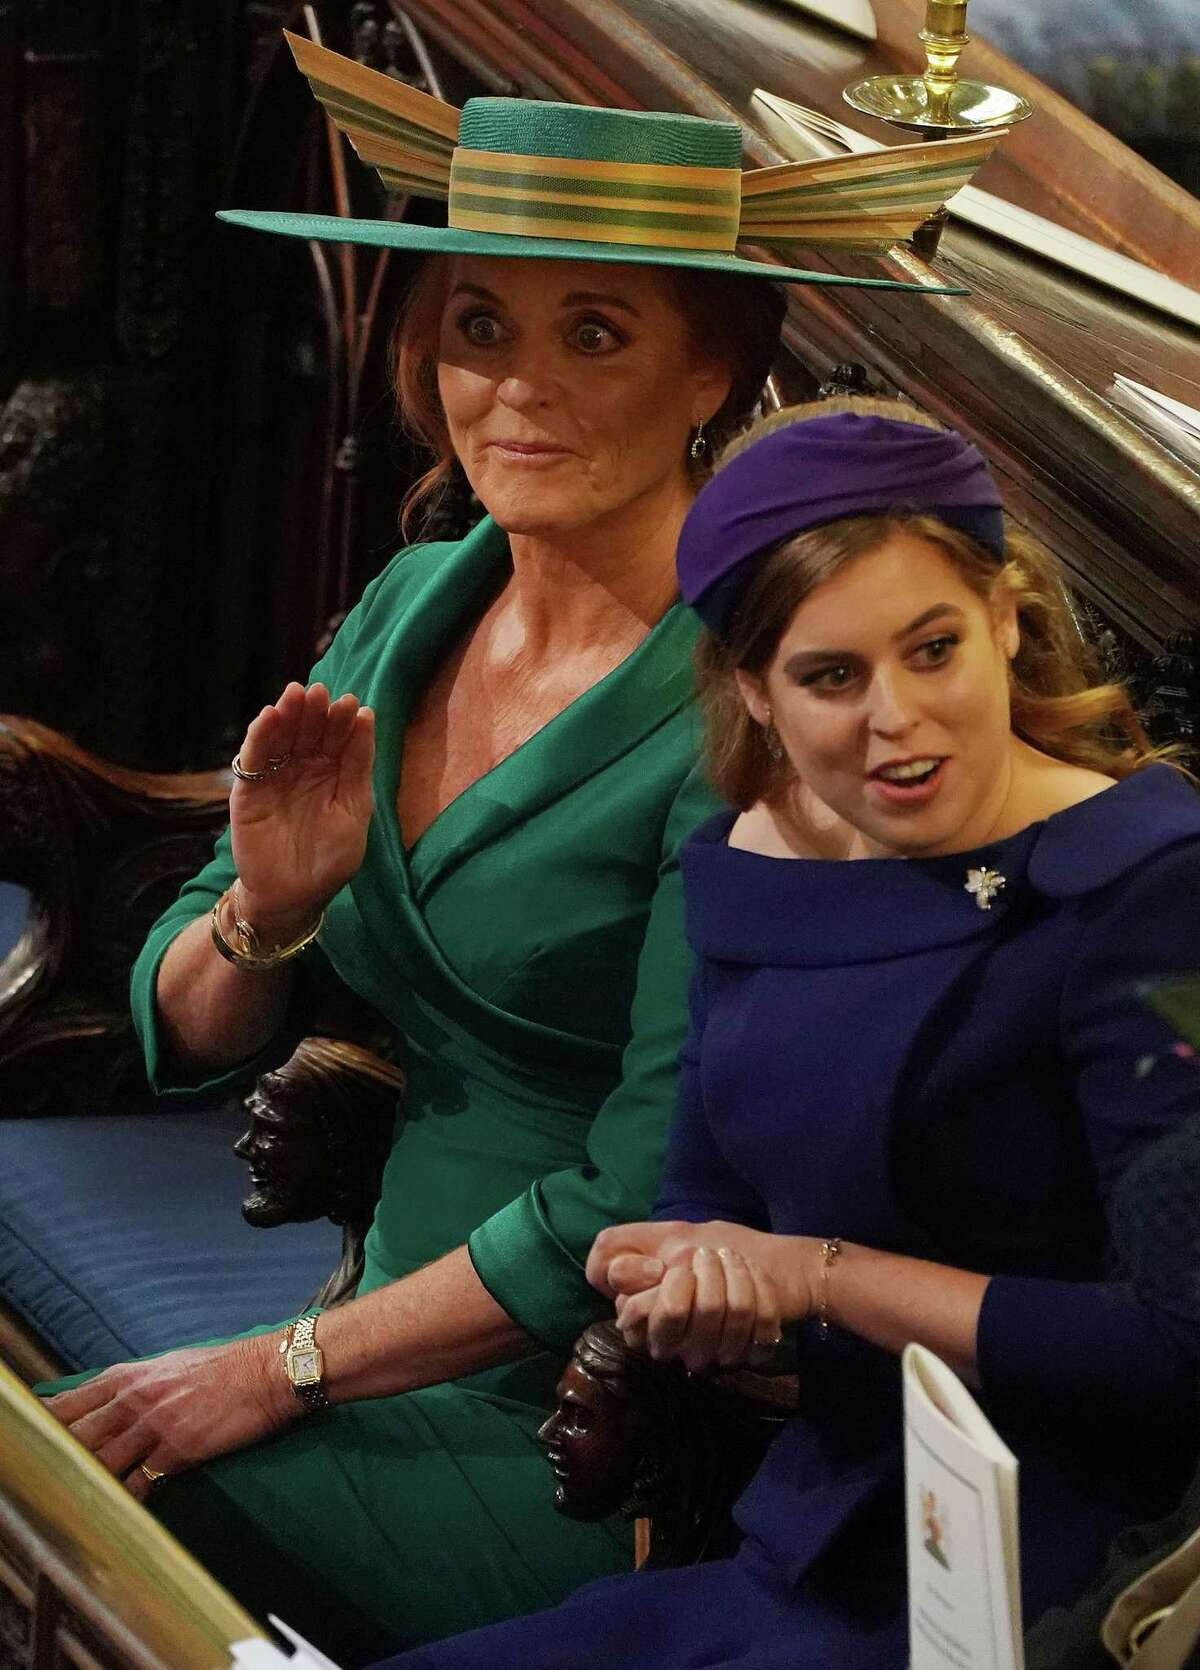 Sarah, Duchess of York, reacts during the wedding ceremony of Britain's Princess Eugenie of York to Jack Brooksbank at St George's Chapel, Windsor Castle, in Windsor, on October 12, 2018. (Photo by Owen Humphreys / POOL / AFP)OWEN HUMPHREYS/AFP/Getty Images